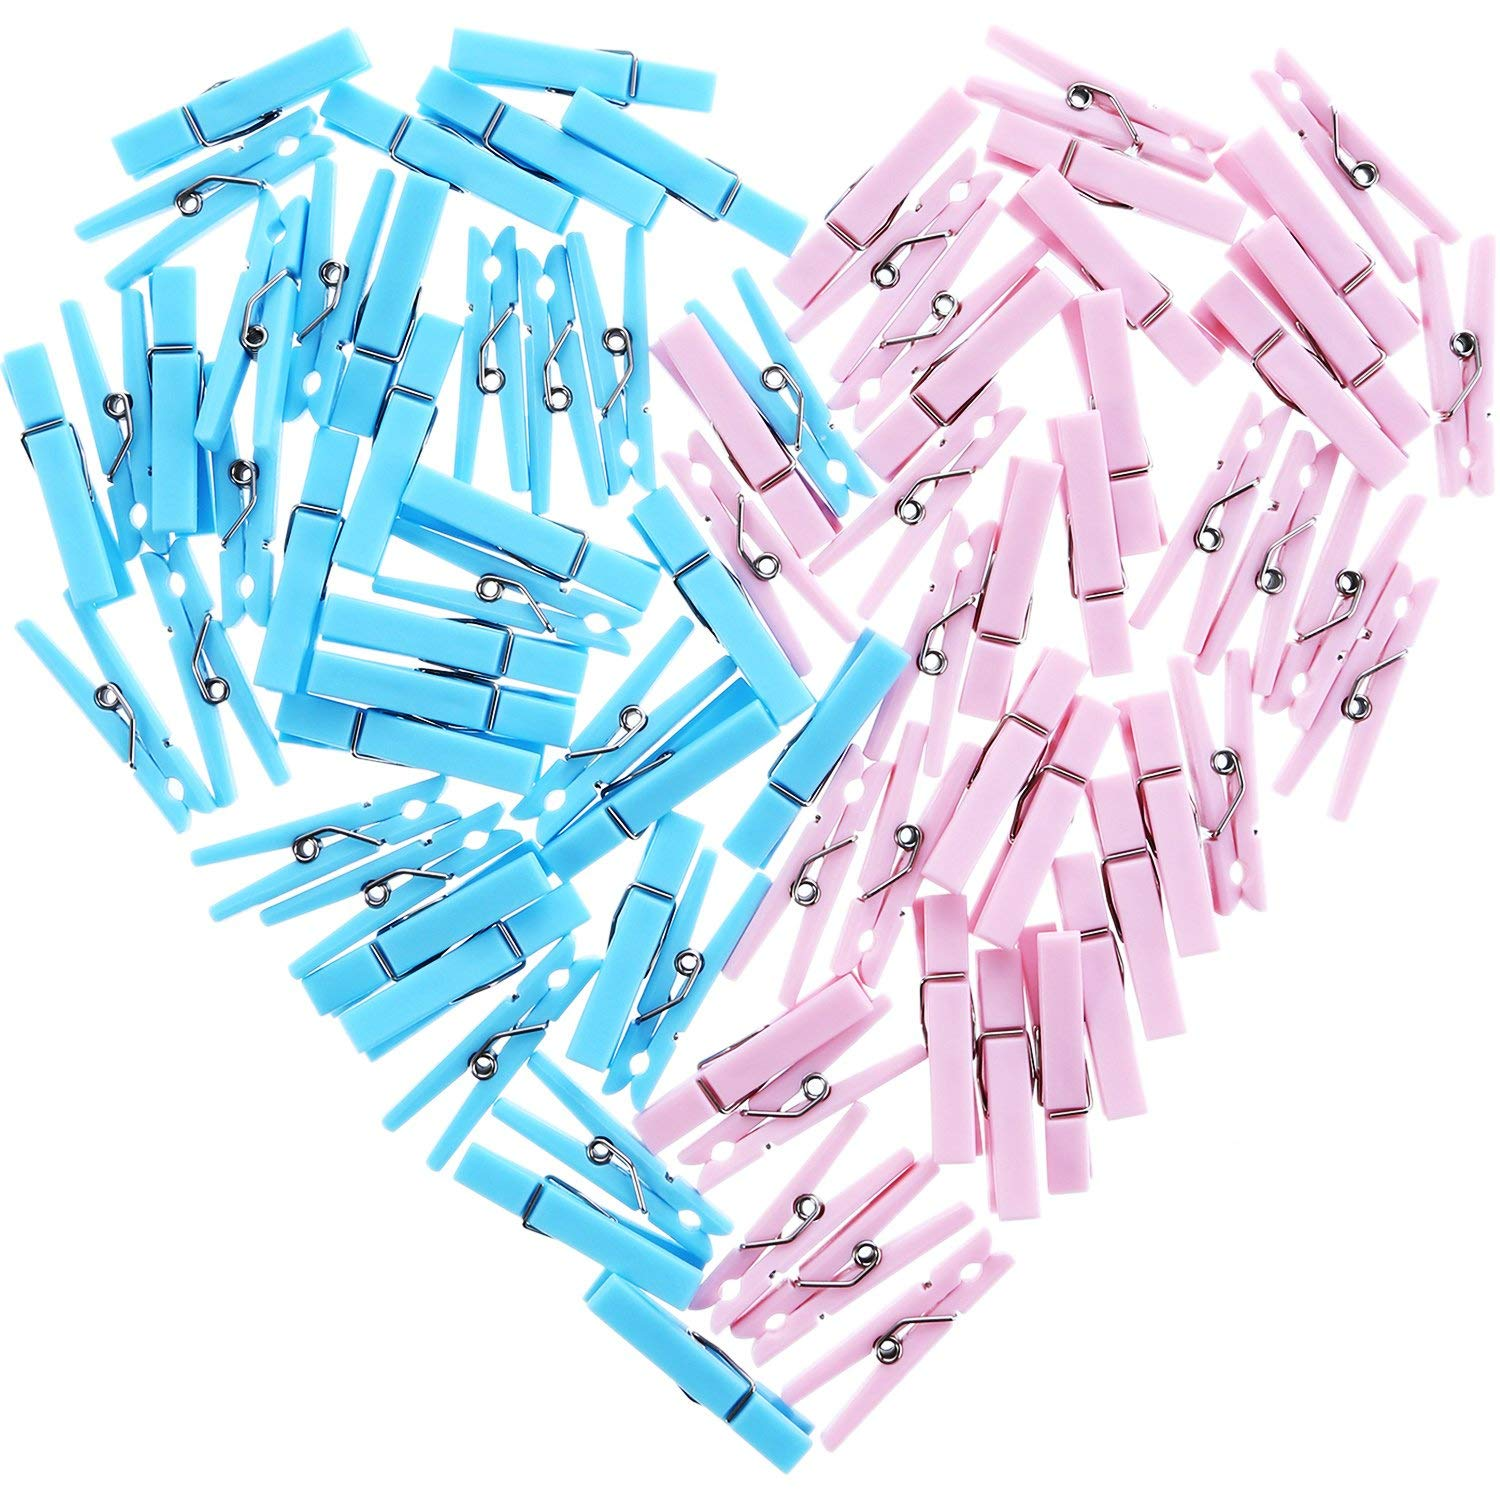 Hestya 80 Pieces Mini Clothespins Baby Shower Clothes Pins Plastic Small Clips for Party Favors, Blue and Pink